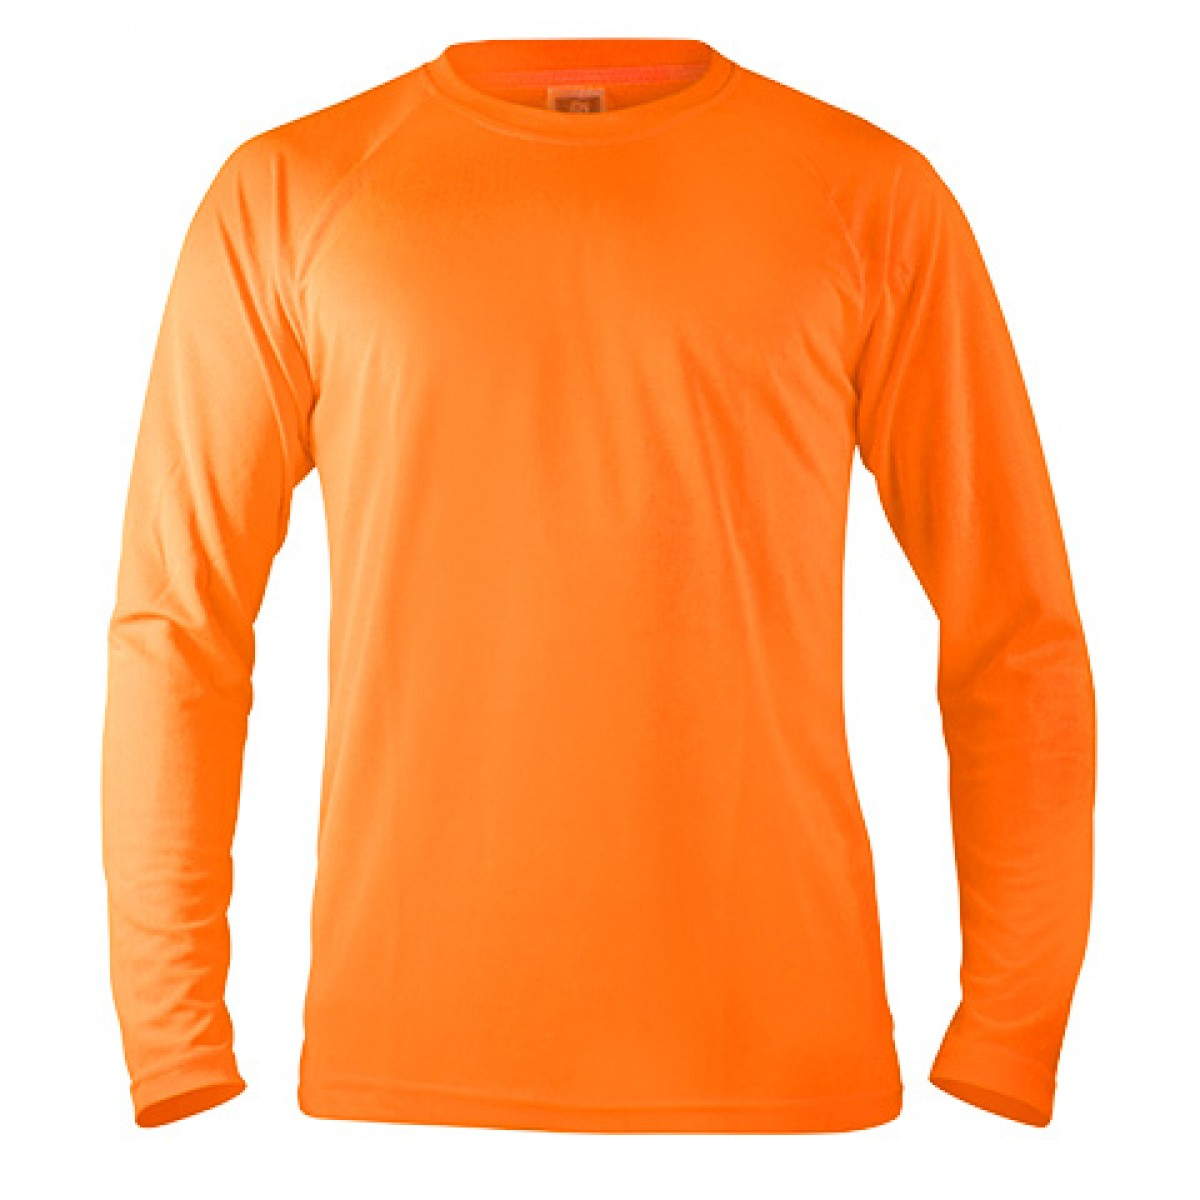 Long Sleeve Performance -Safety Orange-YL